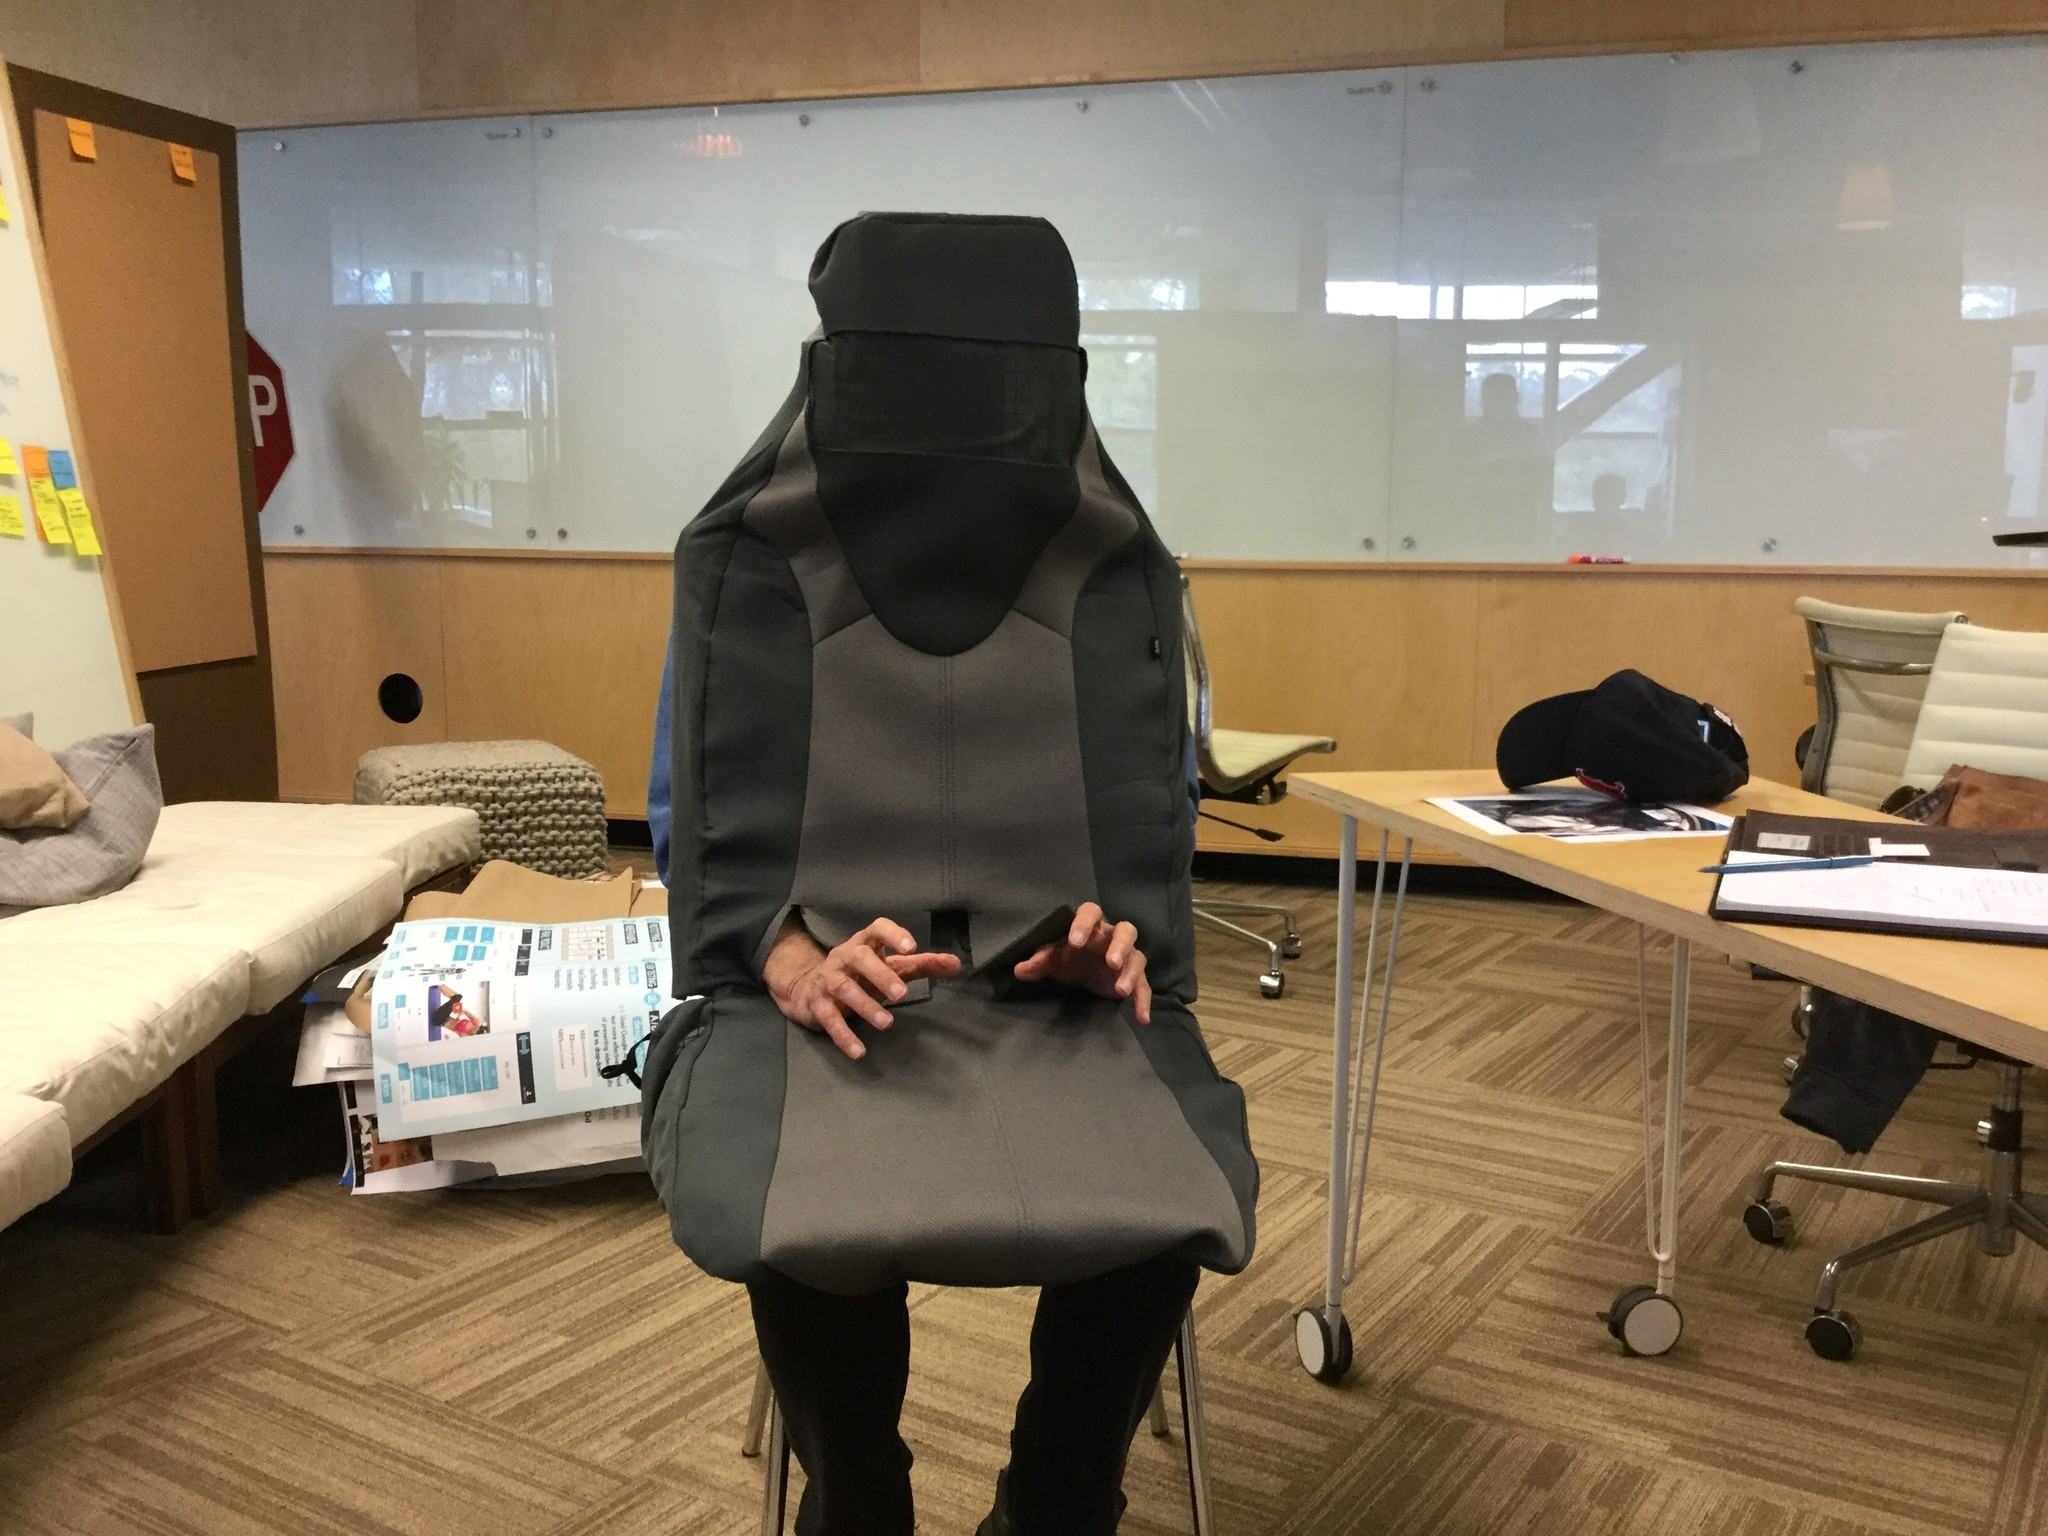 Why Are Ucsd Scientists Disguising Themselves As Empty Car Seats The San Go Union Tribune